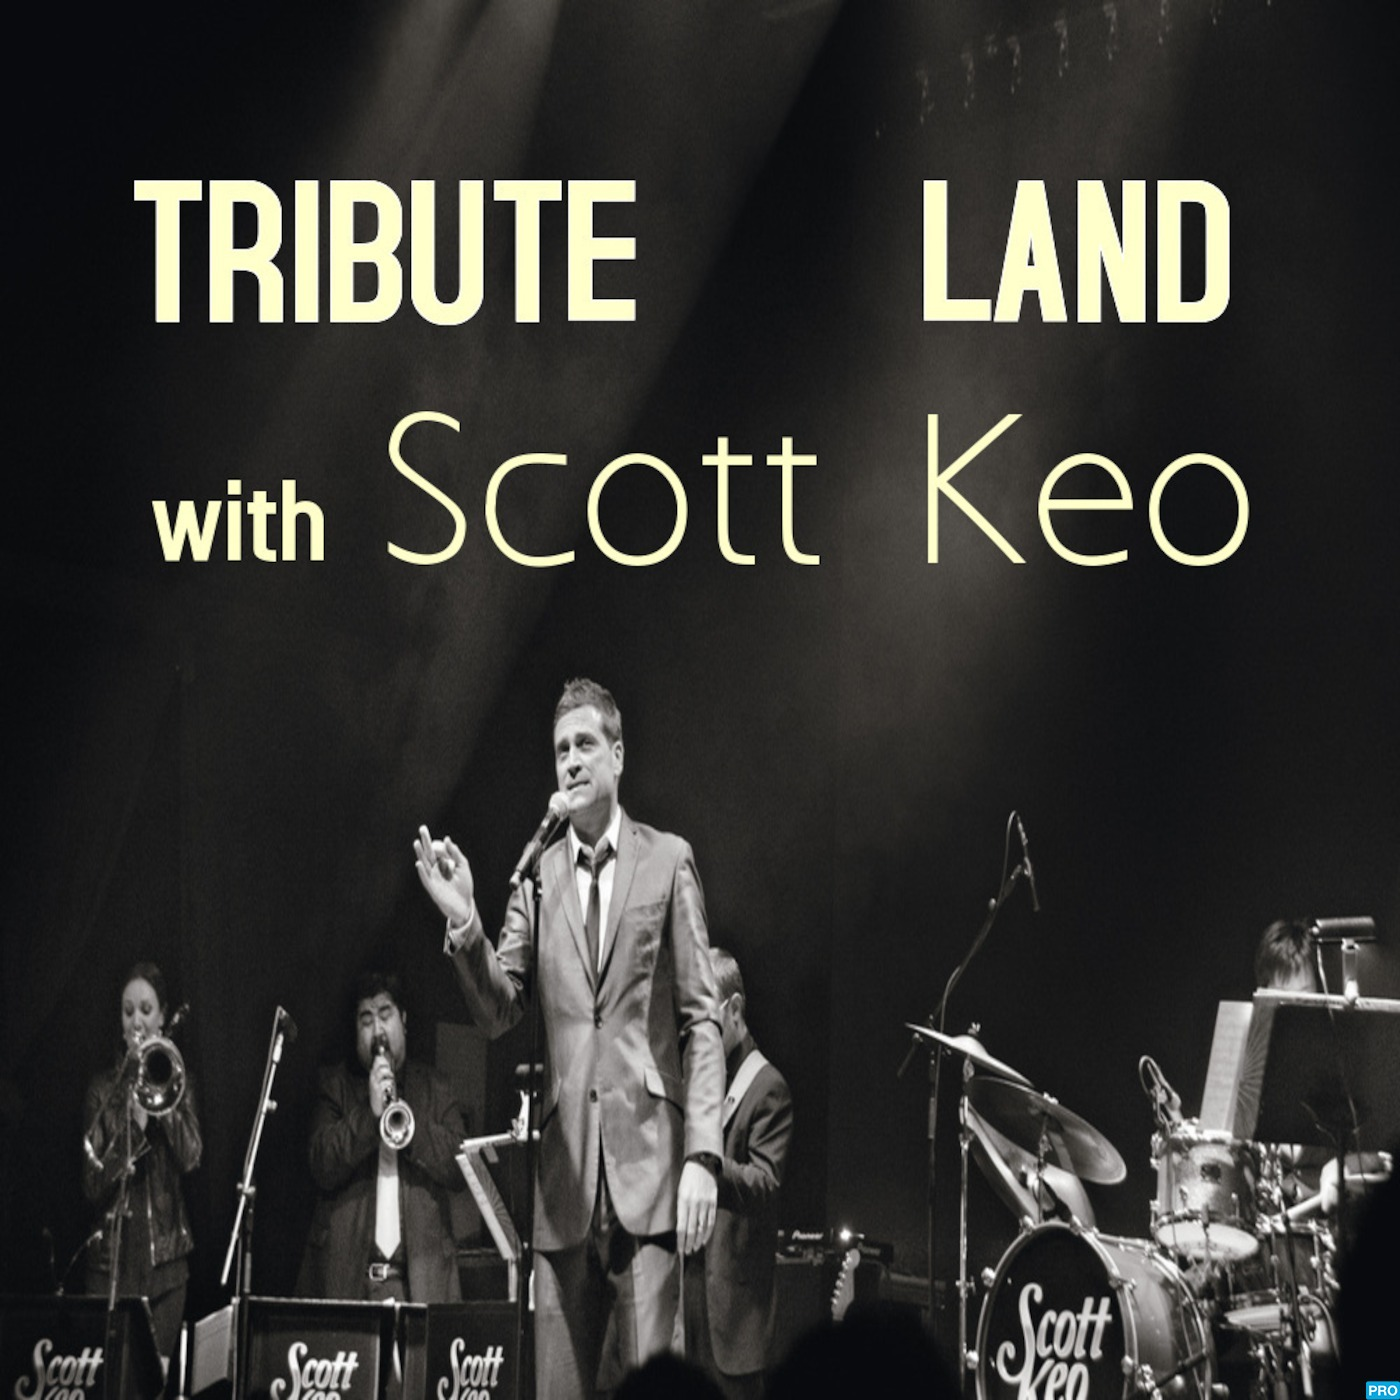 TRIBUTE LAND with Scott Keo